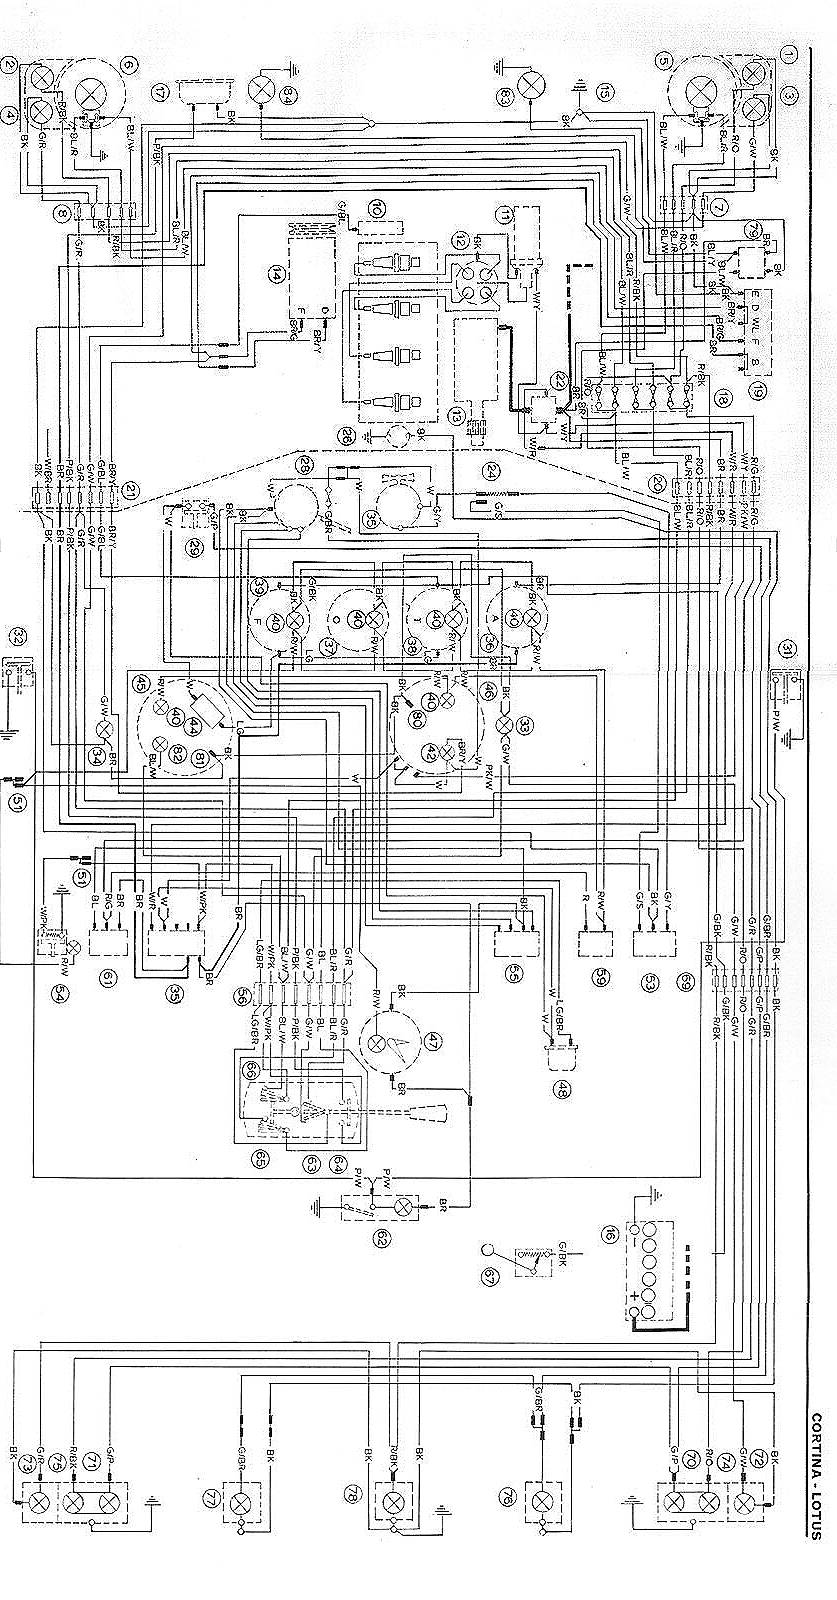 ford escort mk2 wiring diagram download free ford galaxy wiring diagram download efcaviation  [ 837 x 1600 Pixel ]